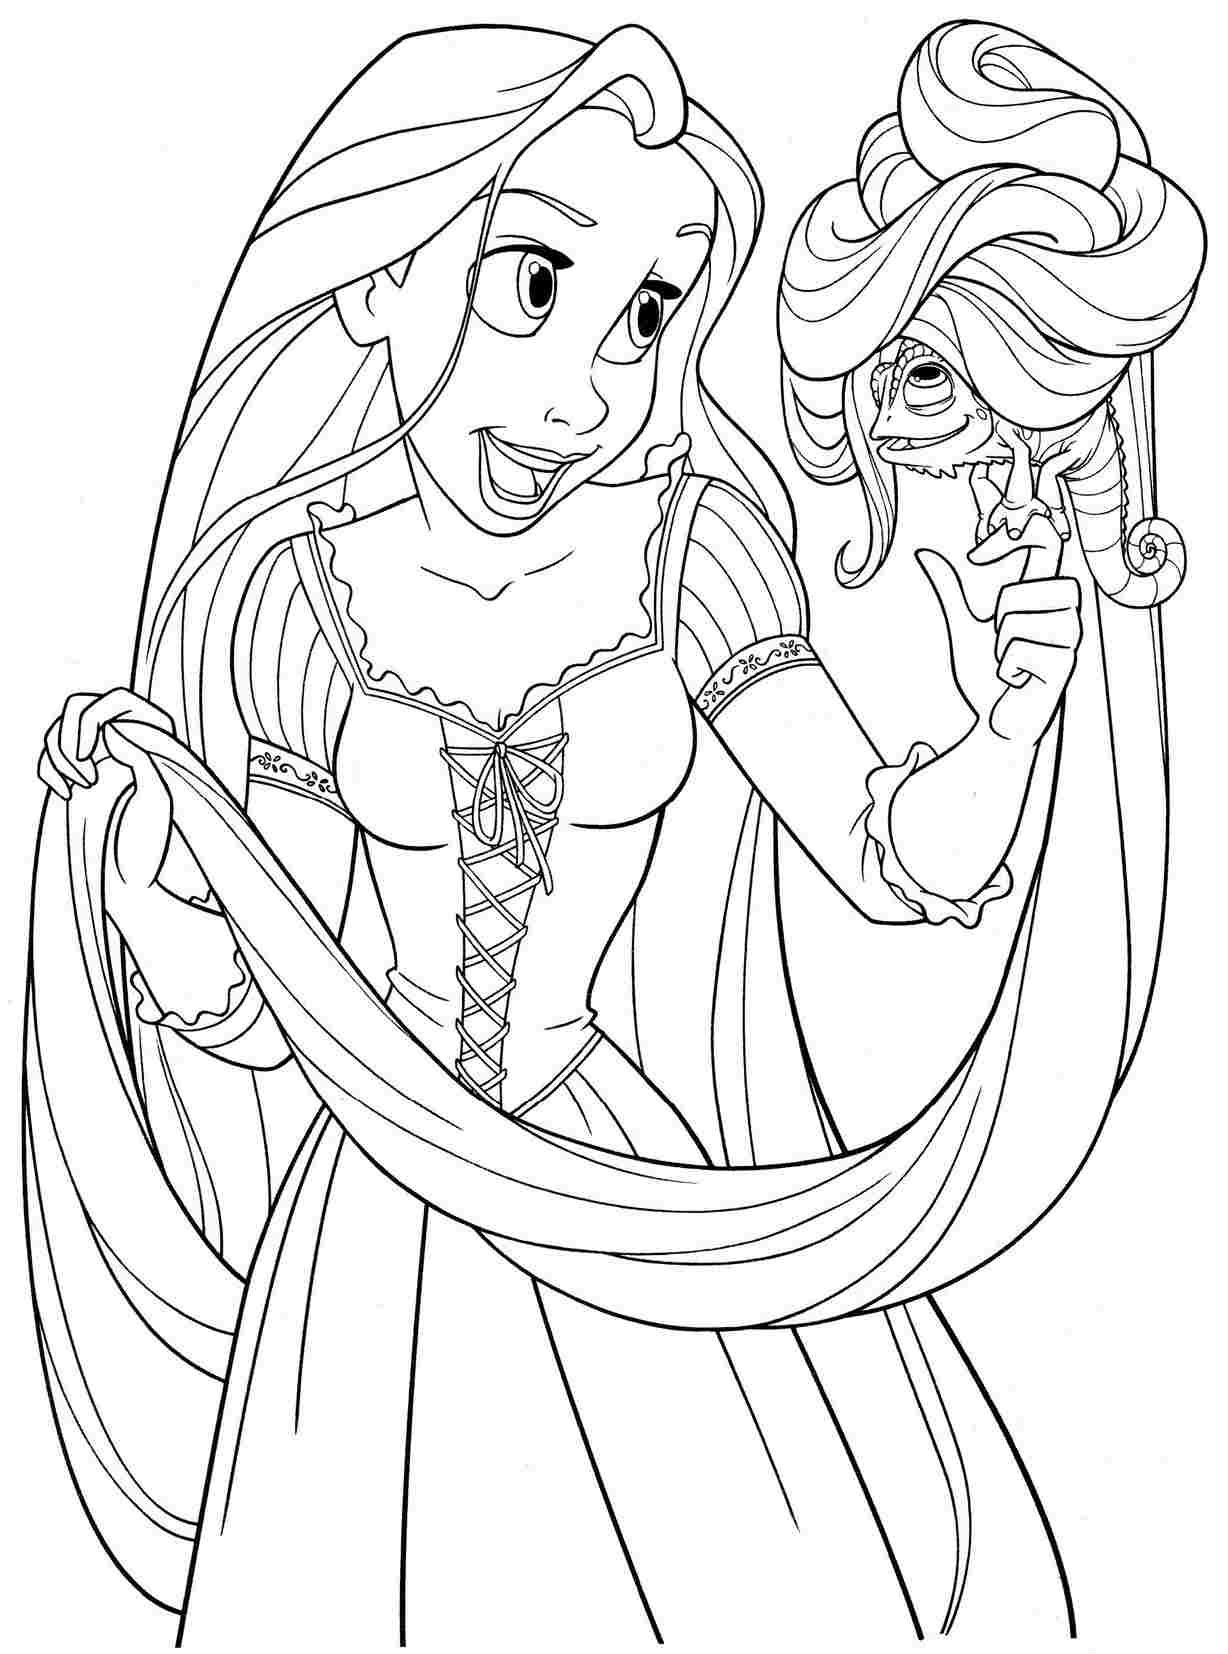 Ausmalbilder Disney Rapunzel Neu Verföhnt : Printable Free Colouring Pages Disney Princess Rapunzel For Kids